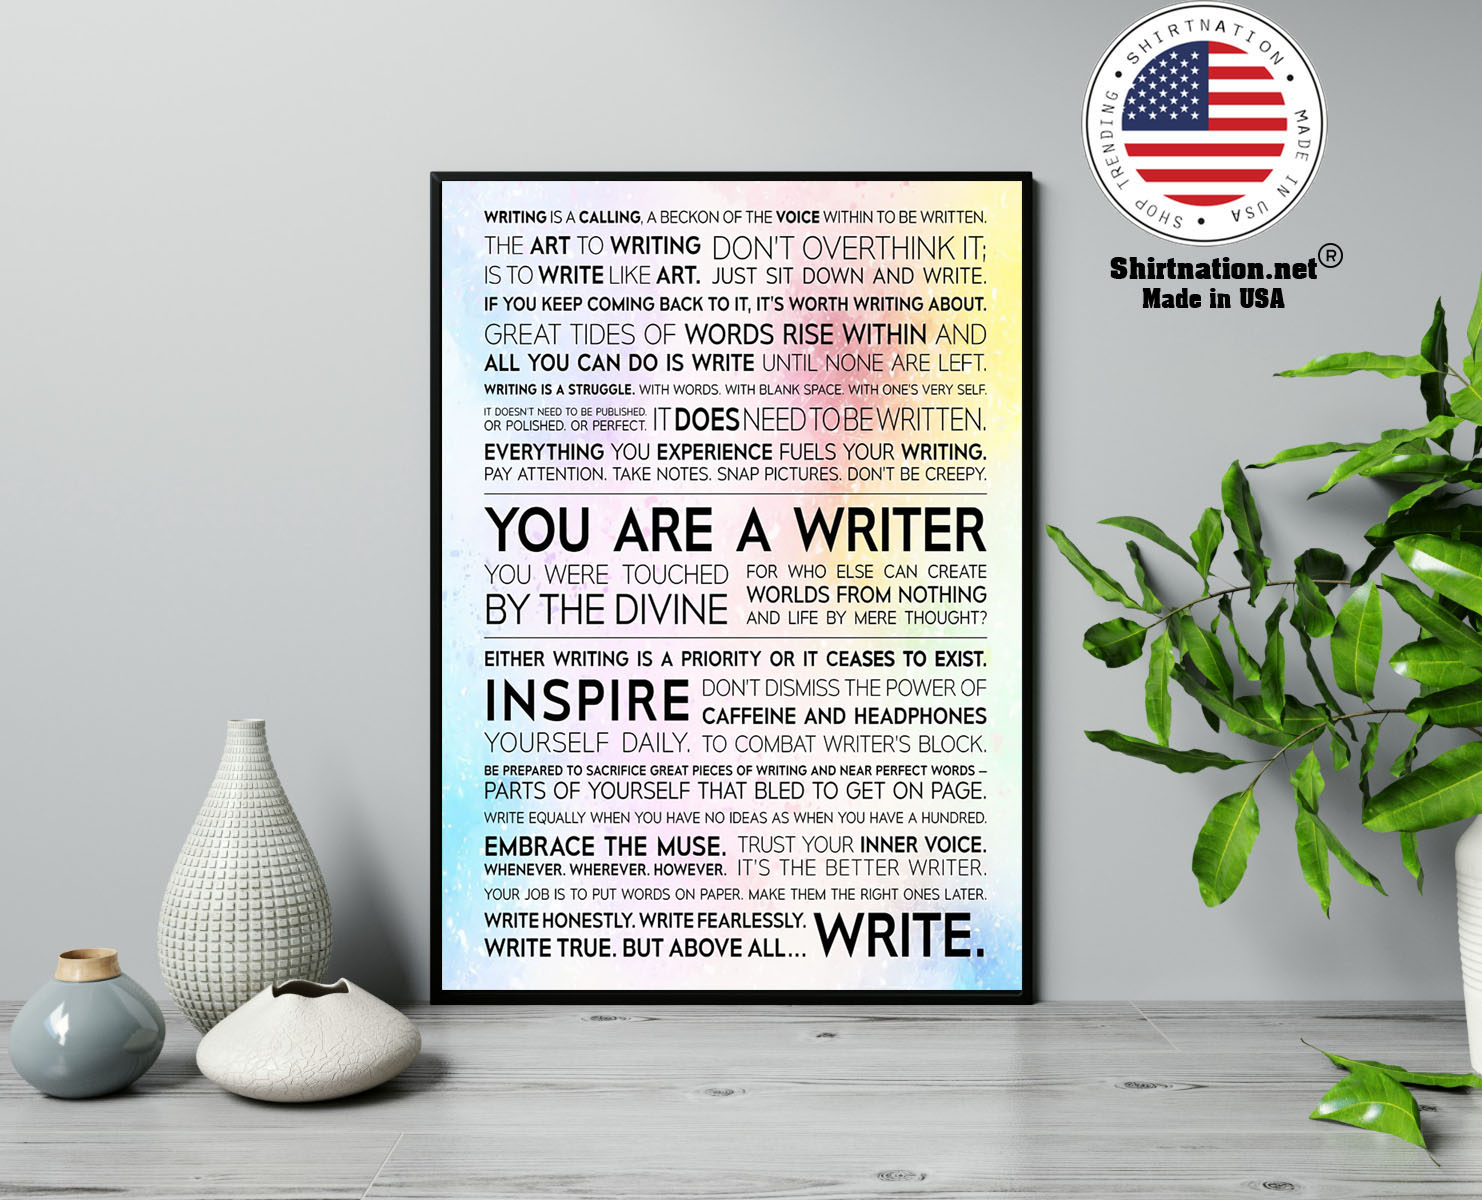 Writer Manifesto writing is a calling a beckon of the voice poster 13